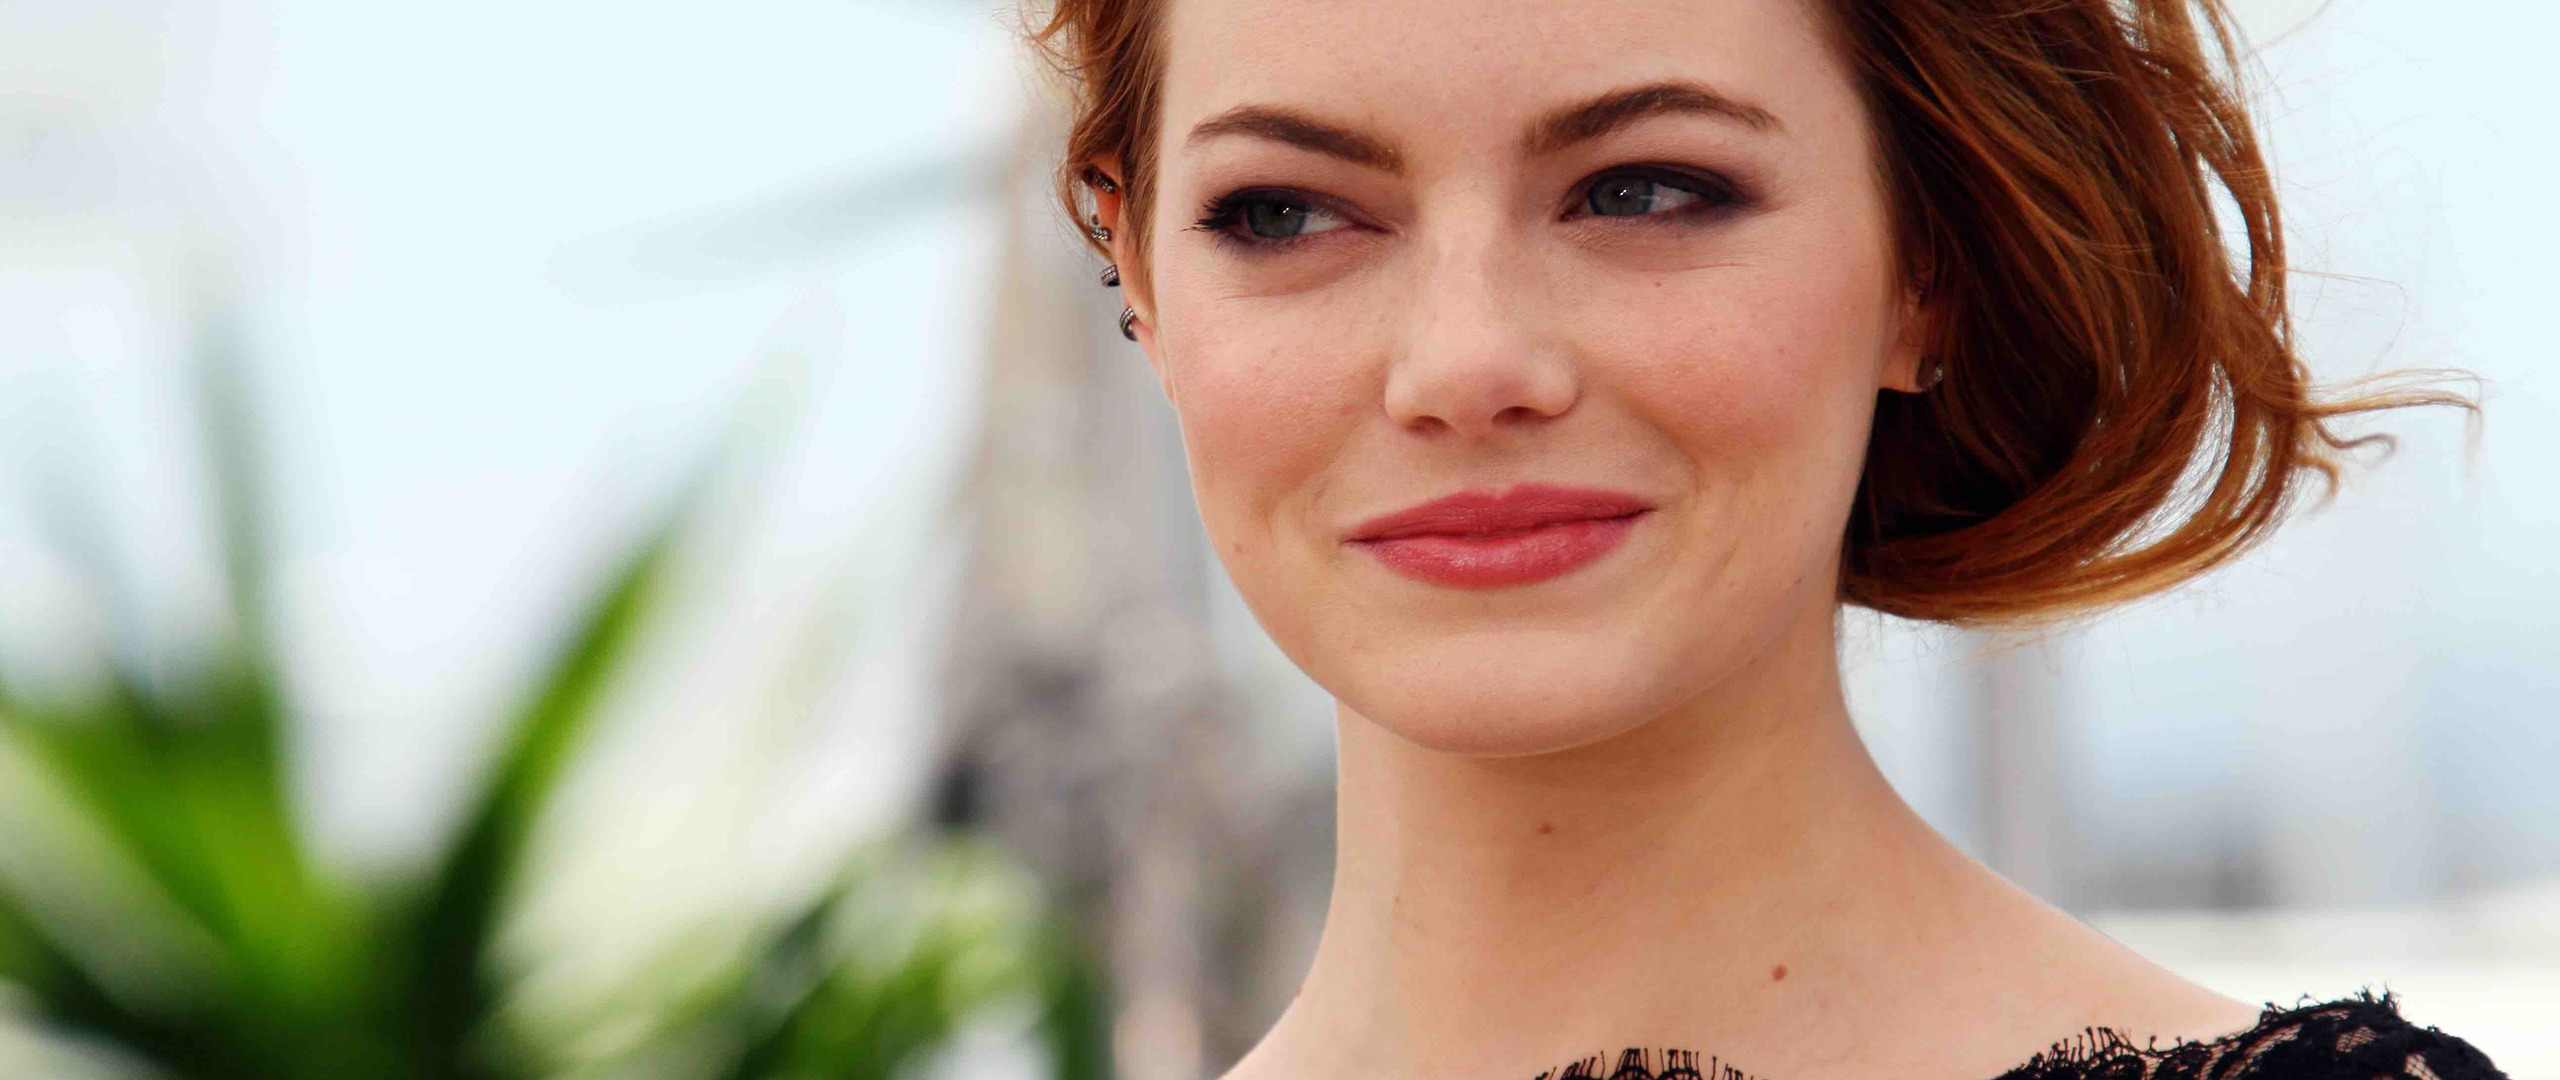 emma-stone-cute-smile-5k-dp.jpg